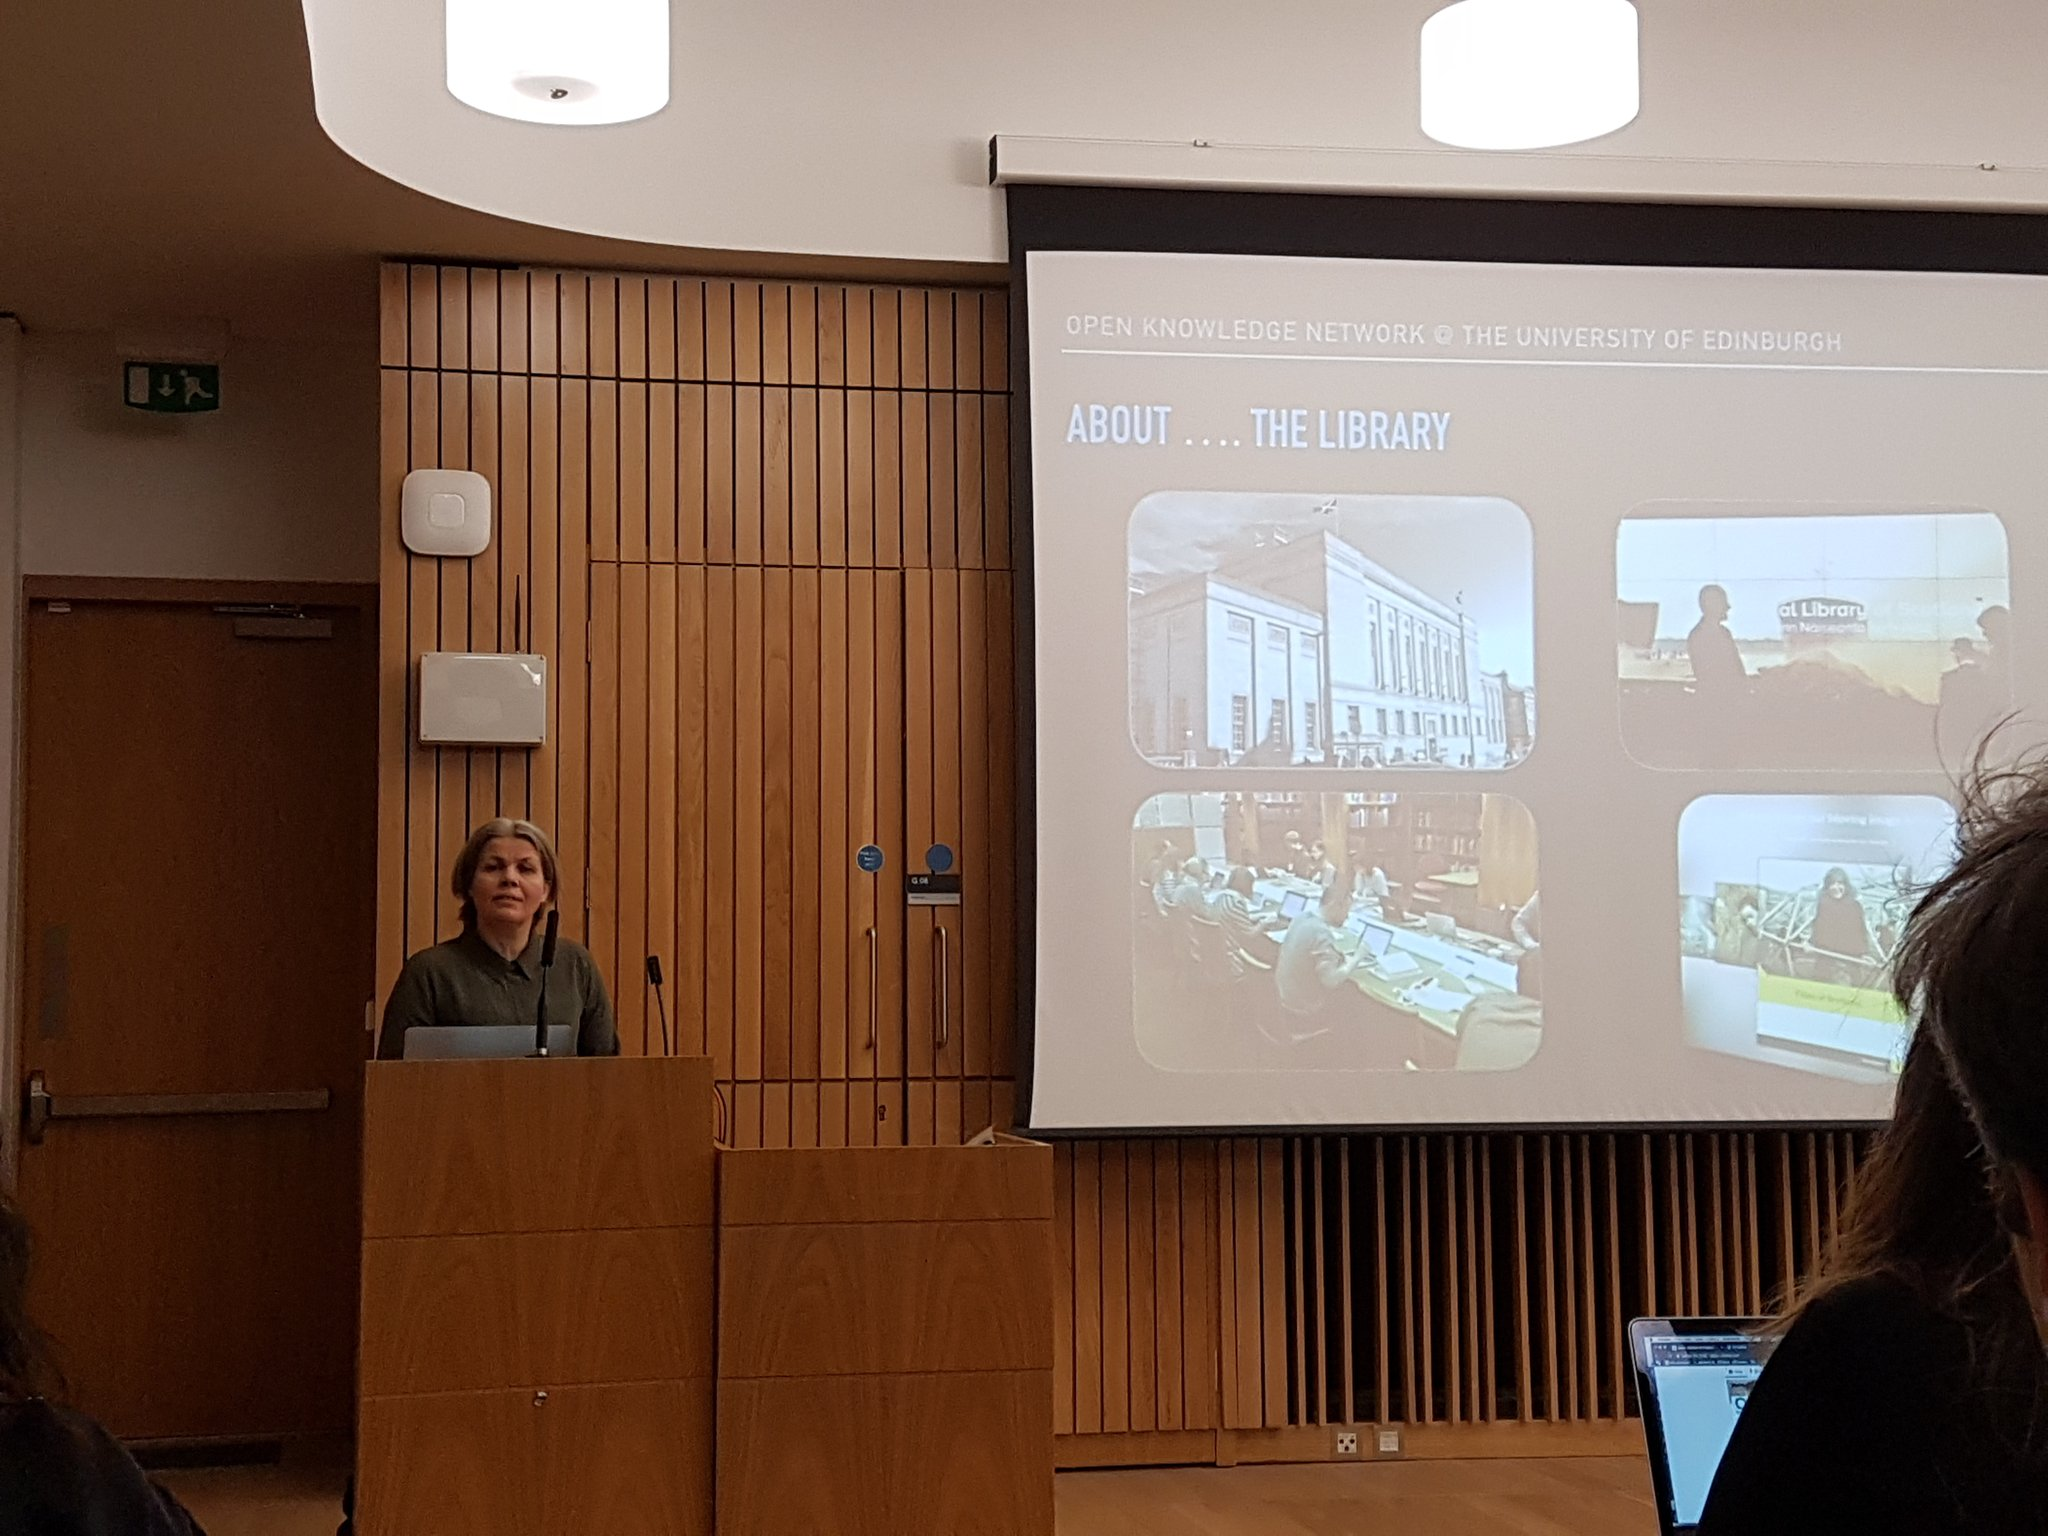 .@GillHamilton on @natlibscot @wikipedia & new @scotsonscreen site at the University of Edinburgh Open Knowledge Network event #UoEOKN https://t.co/Wo45JQiyRO